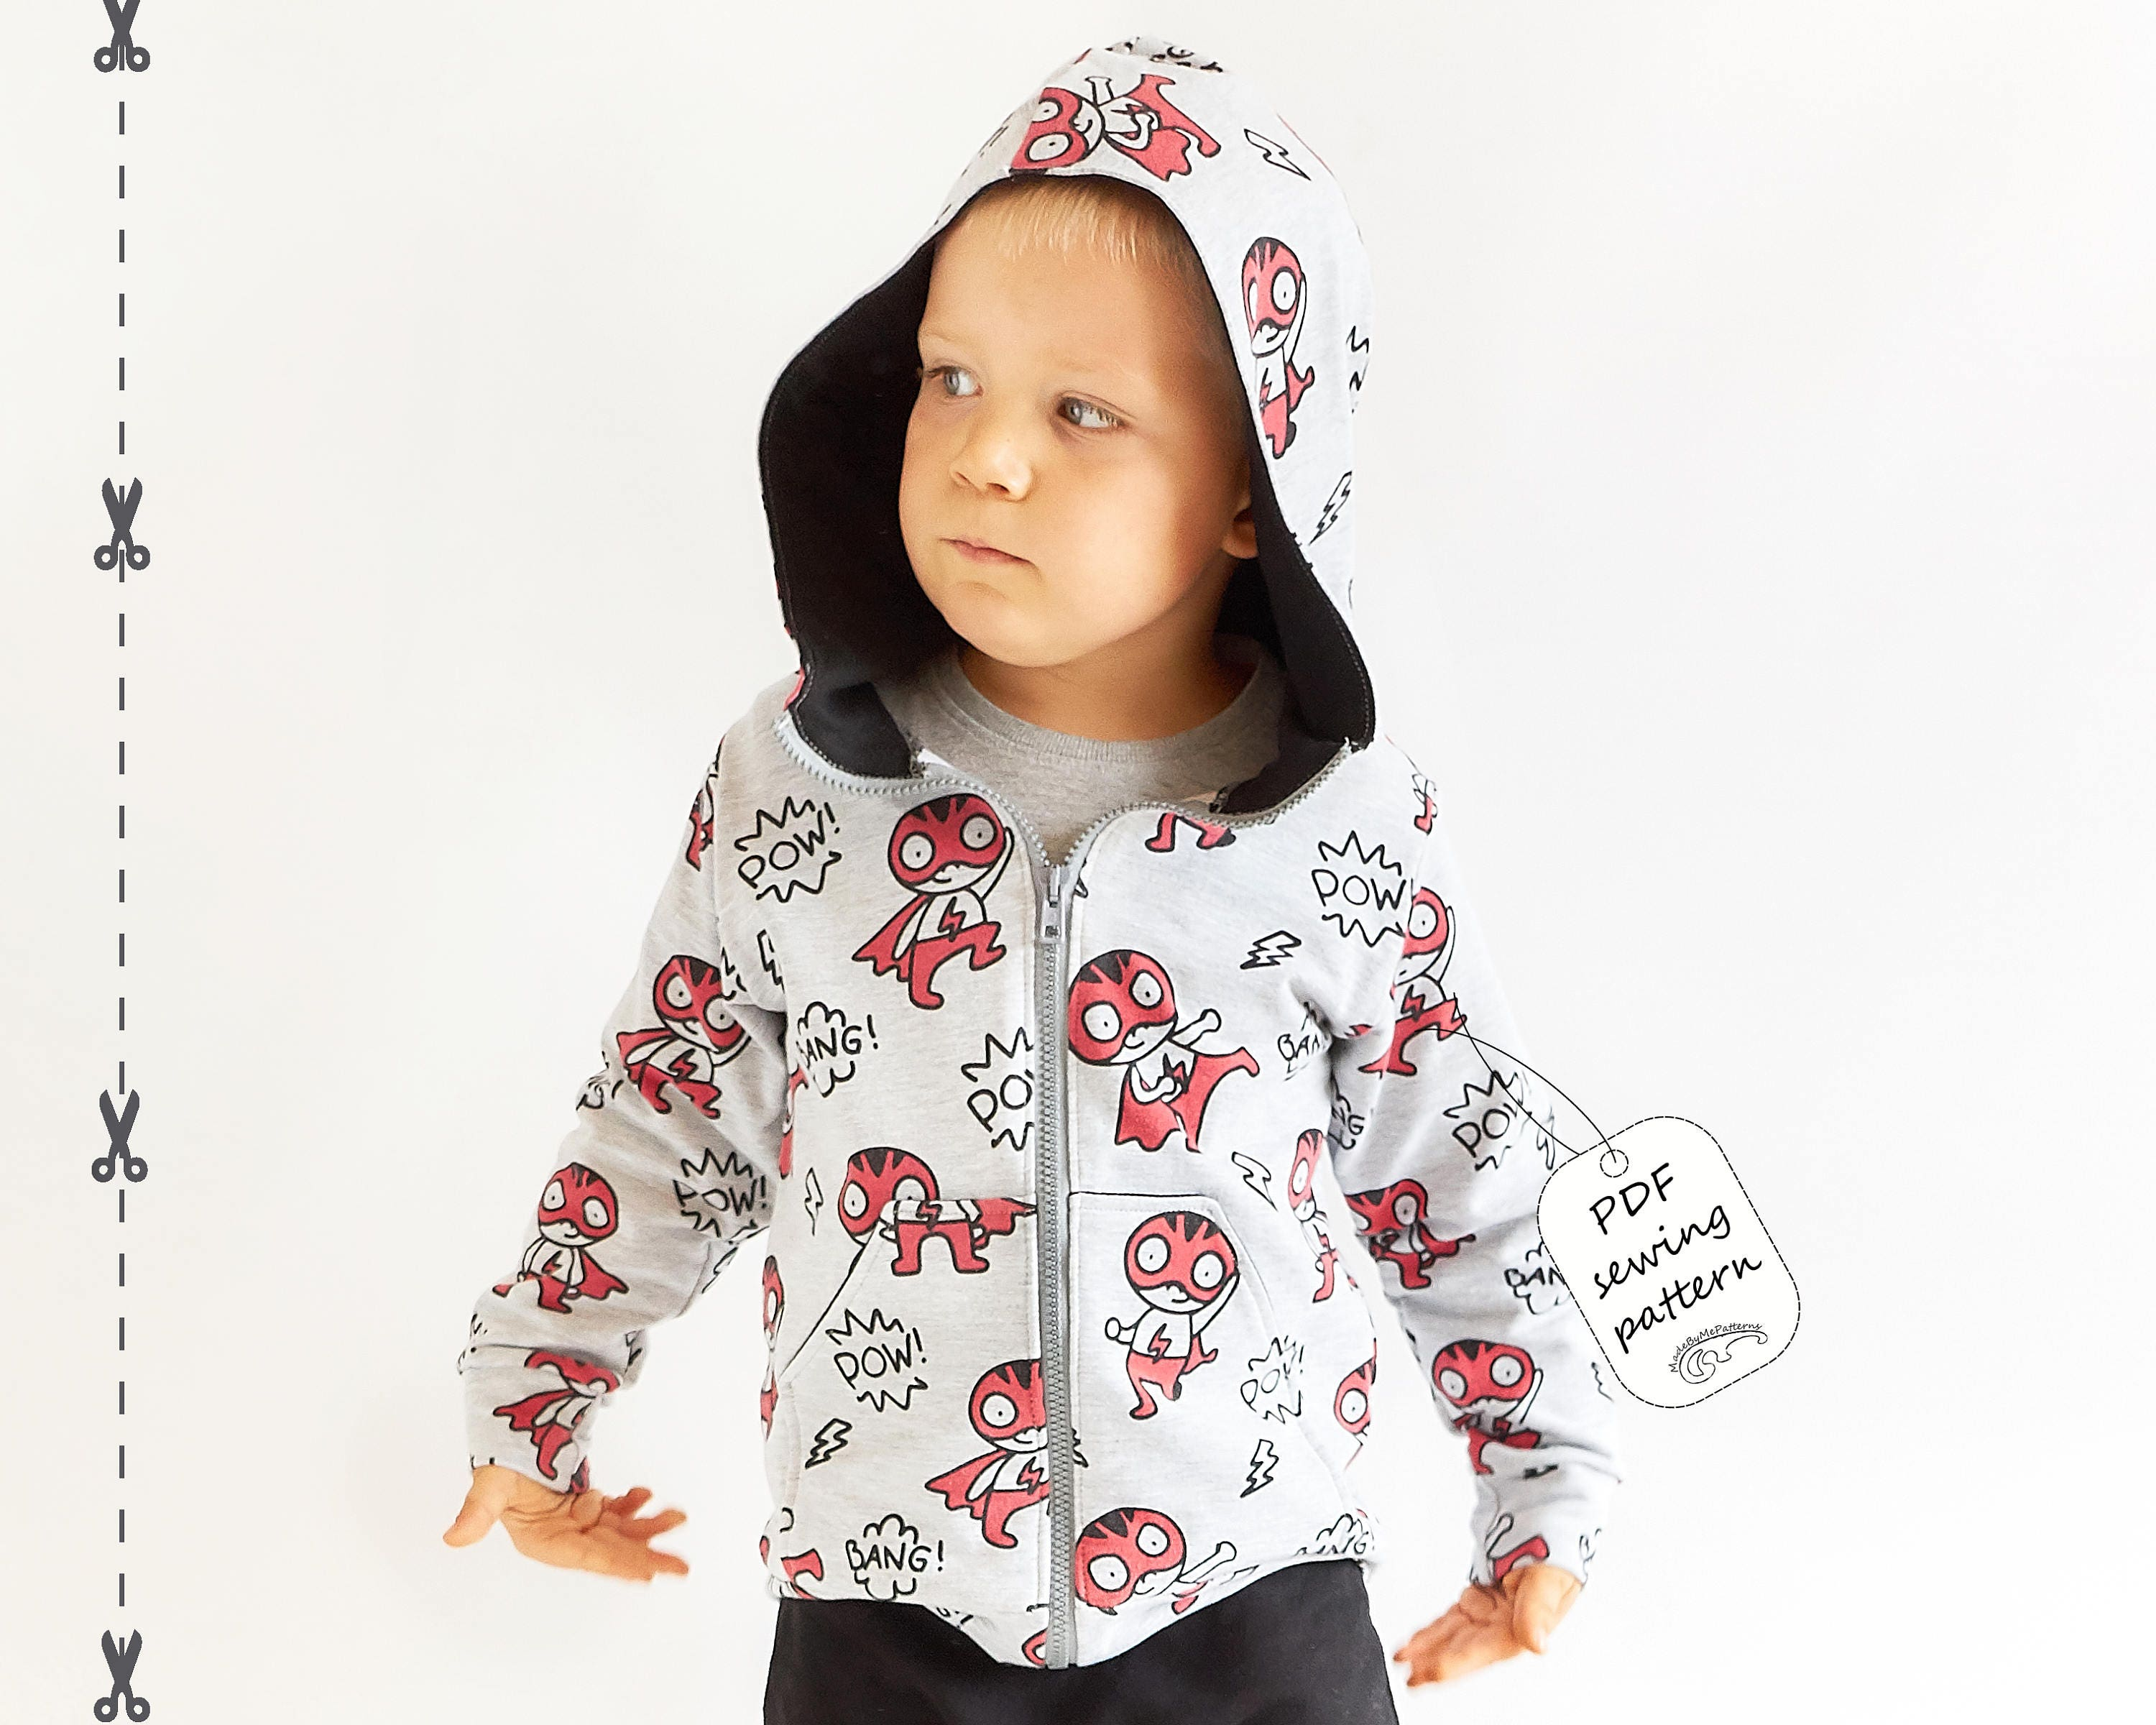 Hoodie sewing pattern pdf download baby sewing patterns kids hoodie sewing pattern pdf download baby sewing patterns kids sewing pattern jeuxipadfo Images